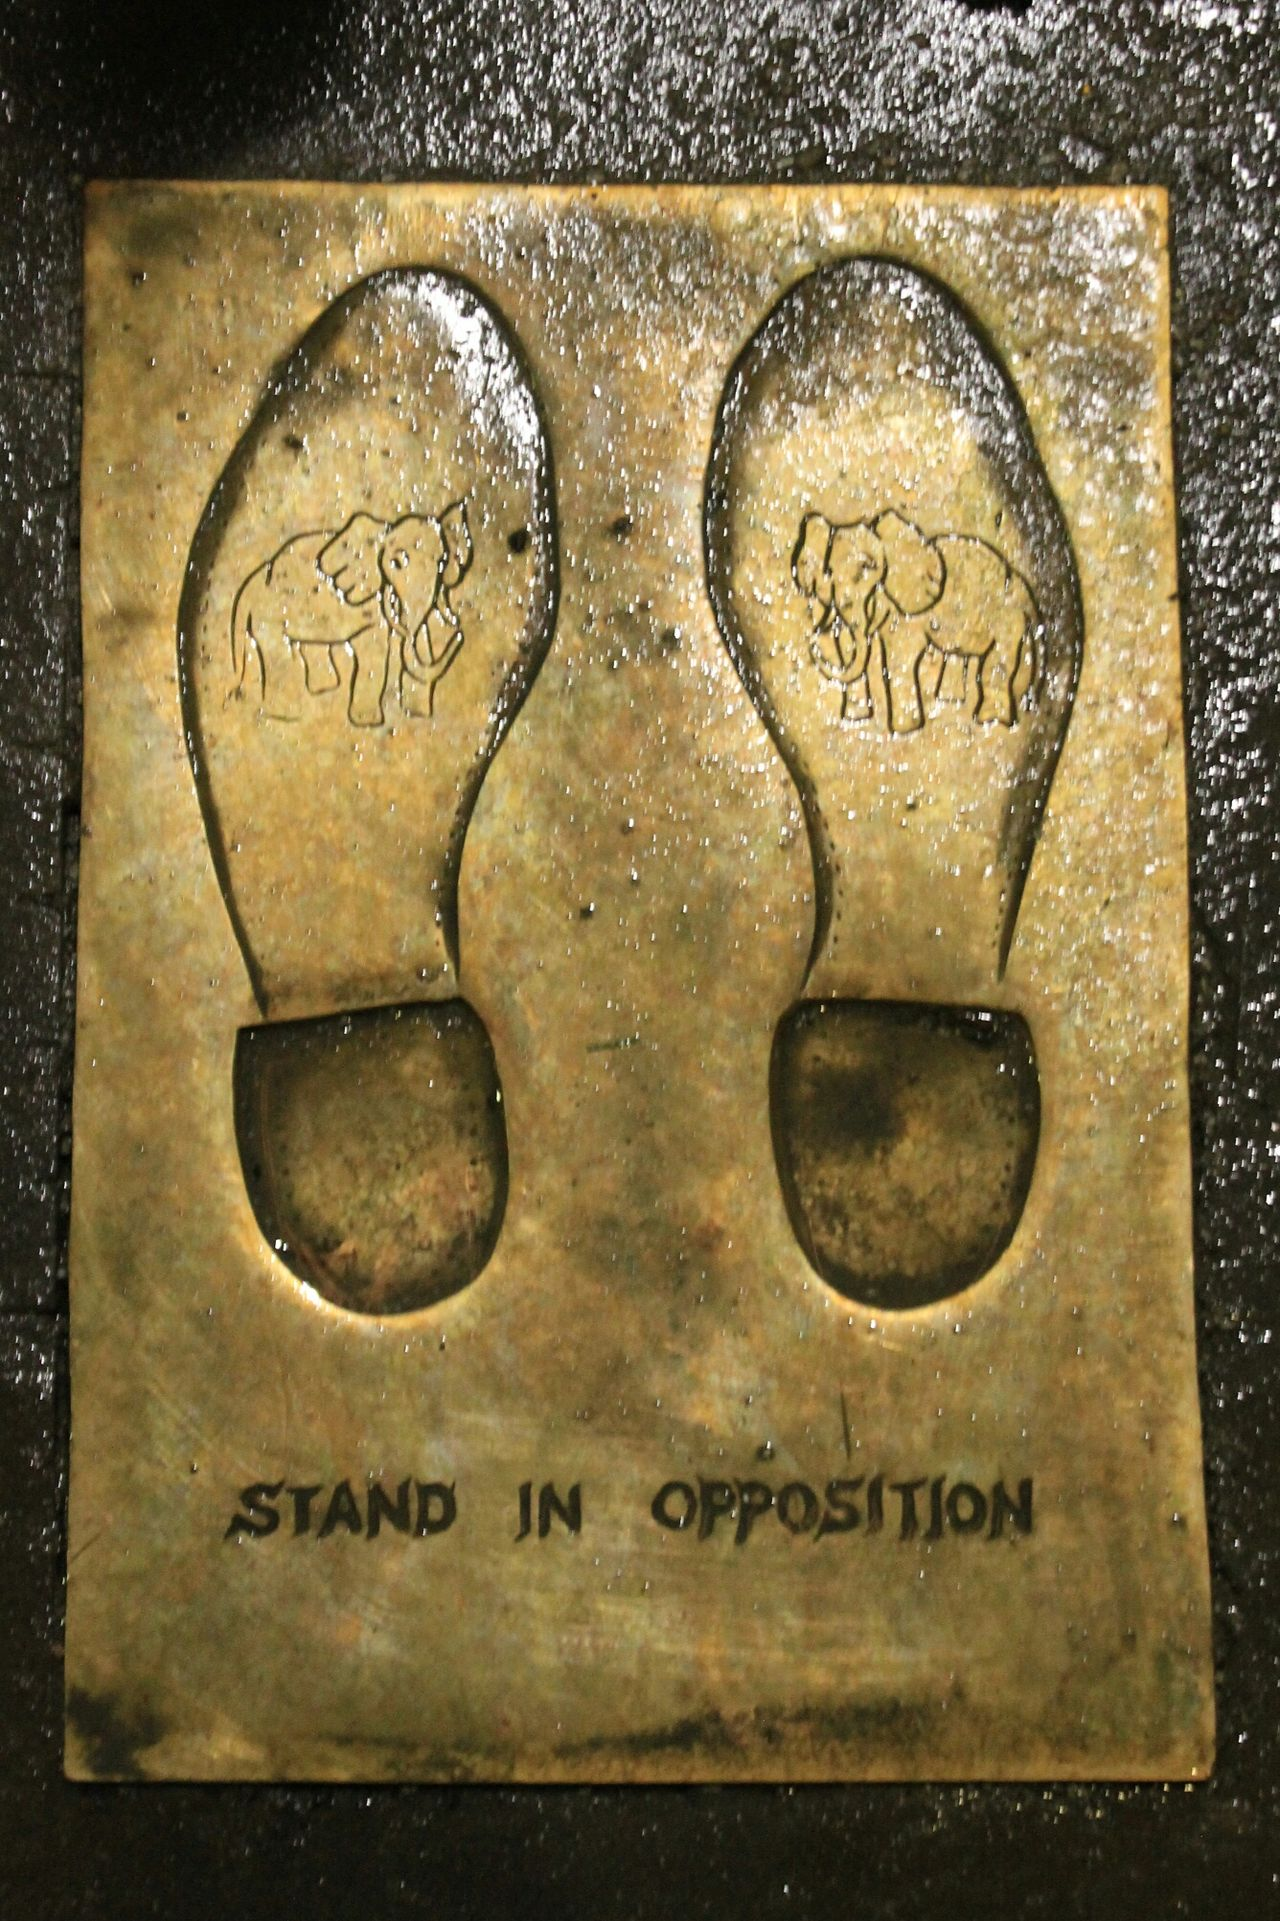 Stand in opposition Boston Boston, Massachusetts Massachusetts Close-up No People Outdoors Plaque Elephants Republican Party Republican Elephant Feet Foot Prints